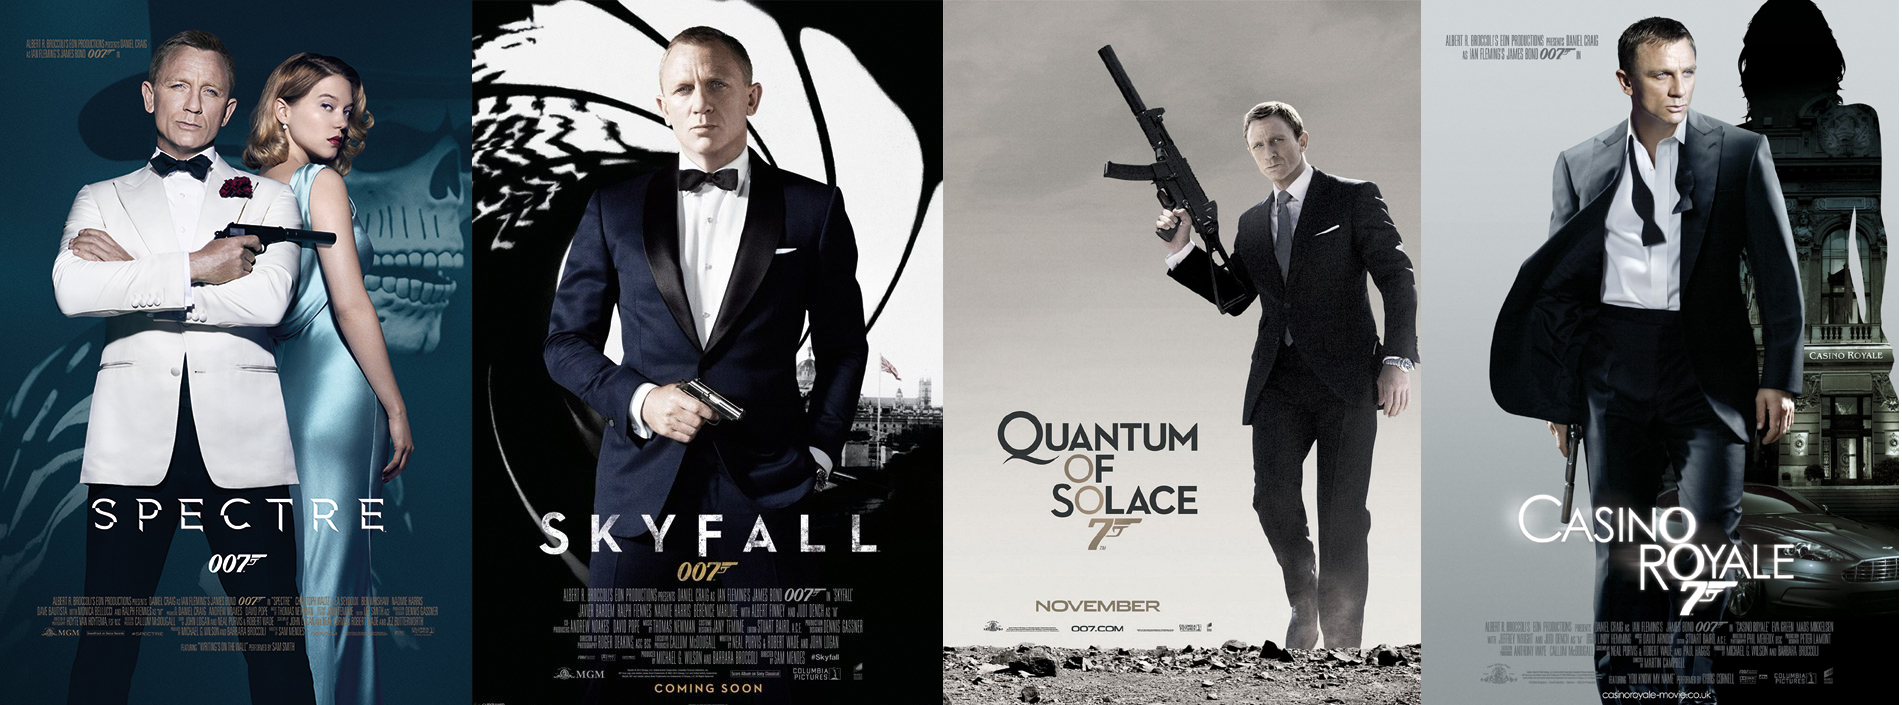 Casino Royale 2006 Quantum Of Solace 2008 Skyfall 2012 SPECTRE 2015